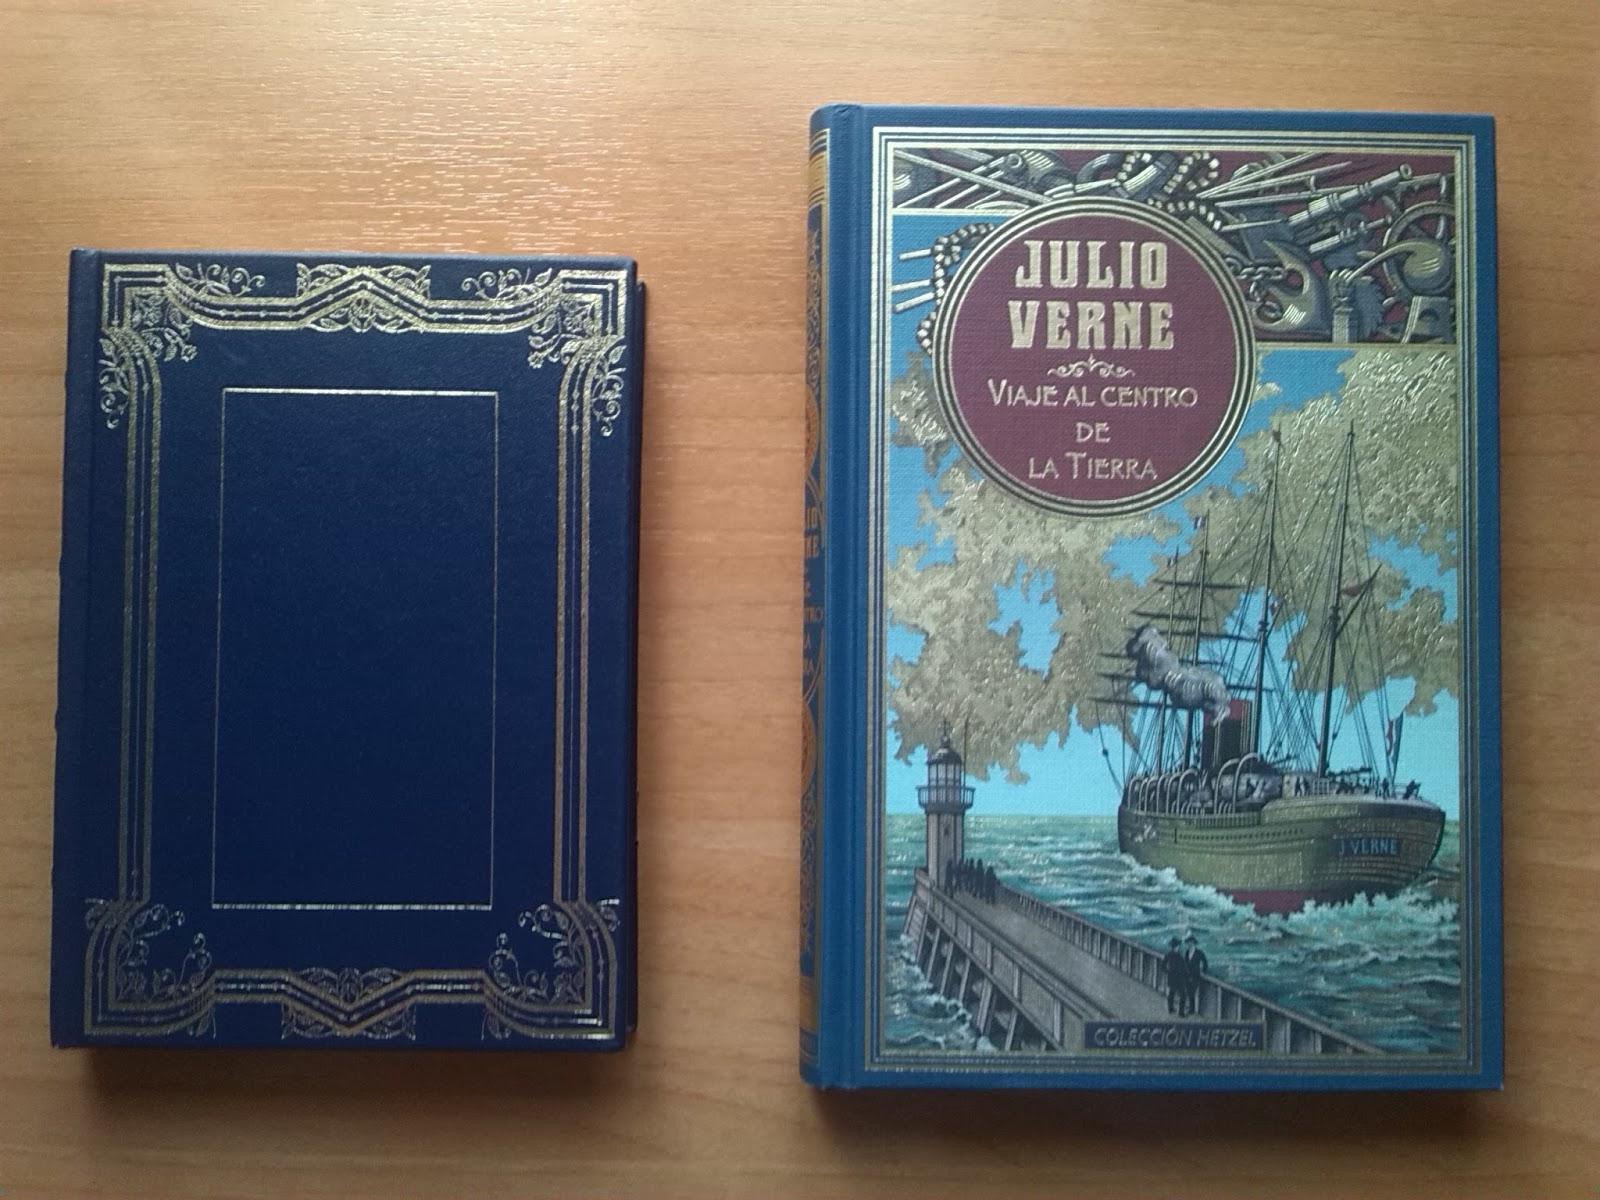 El Exorcista Libro Old And New Books With Beautiful Classical Covers